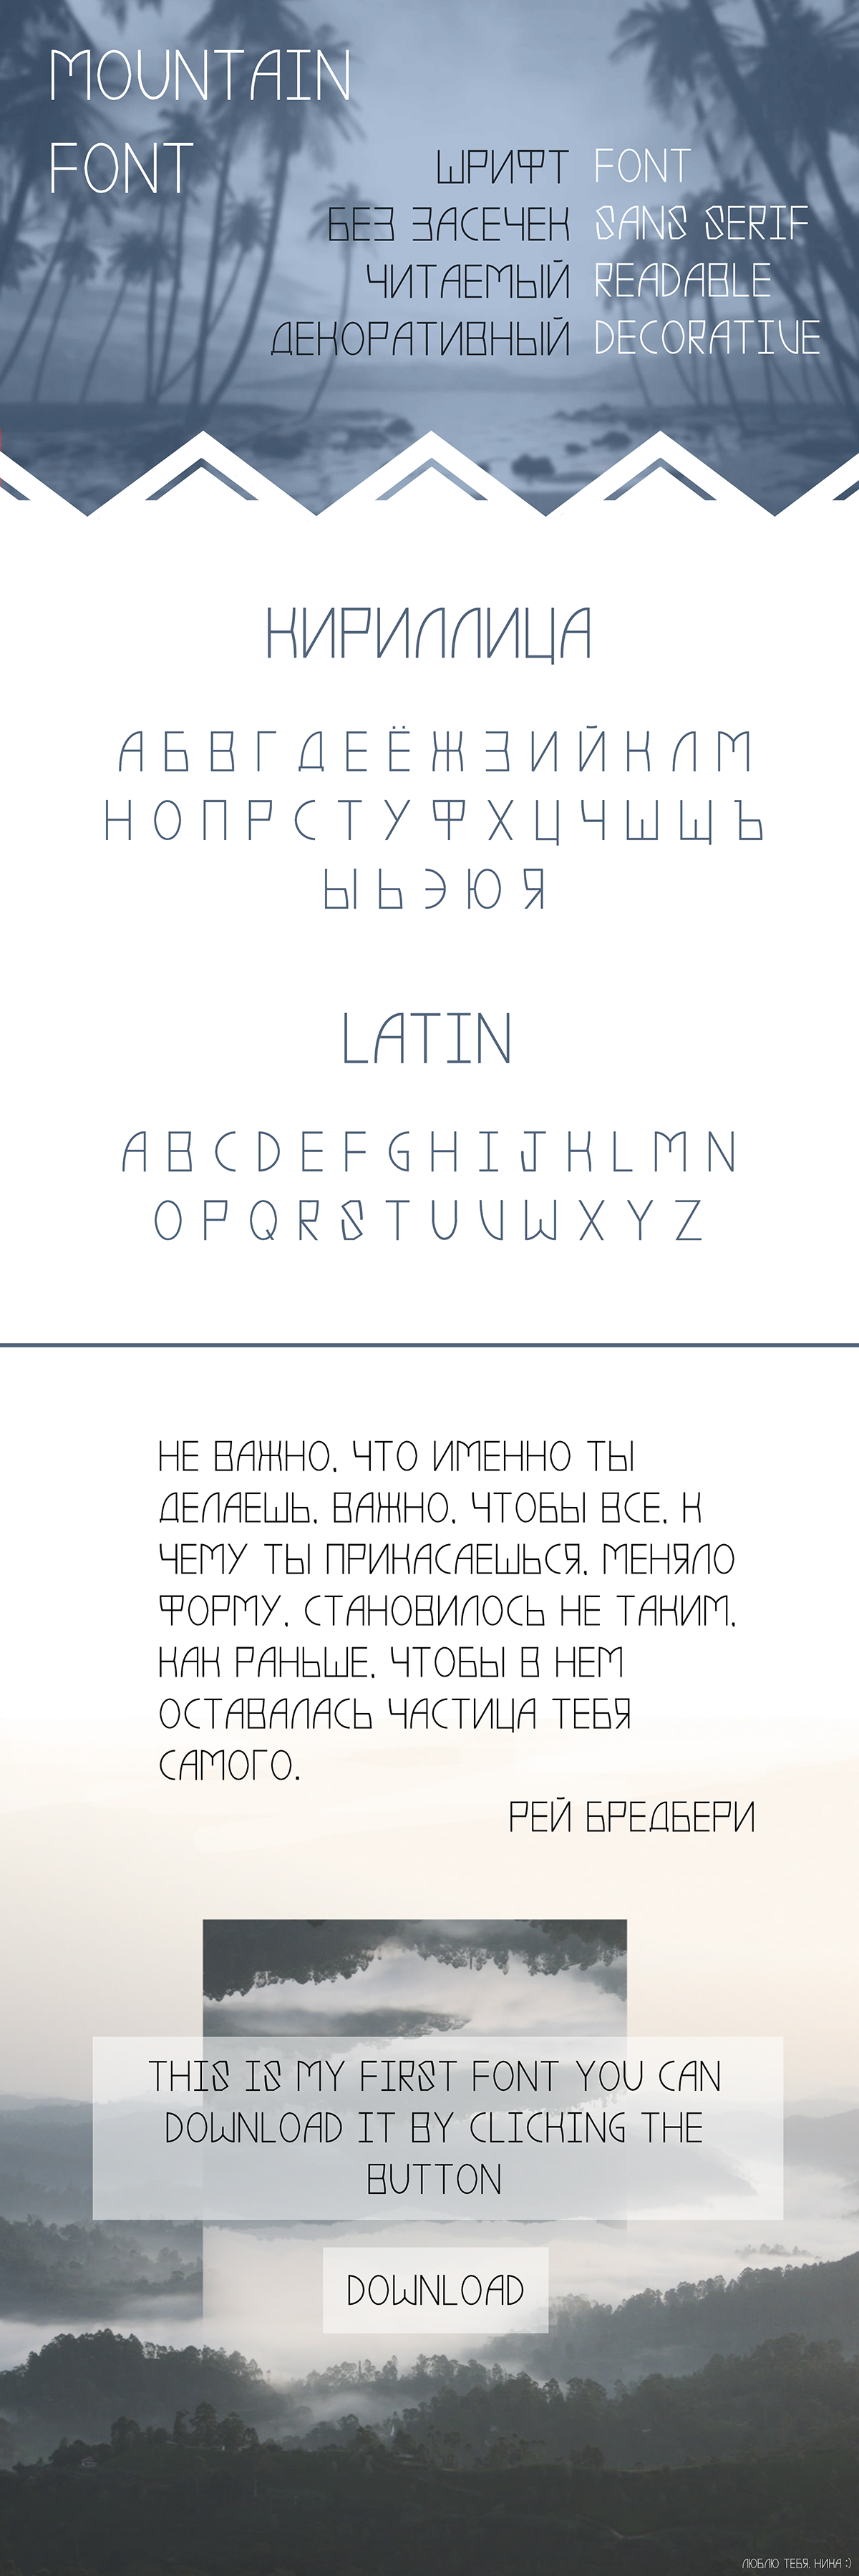 Mountain font - my first font 1